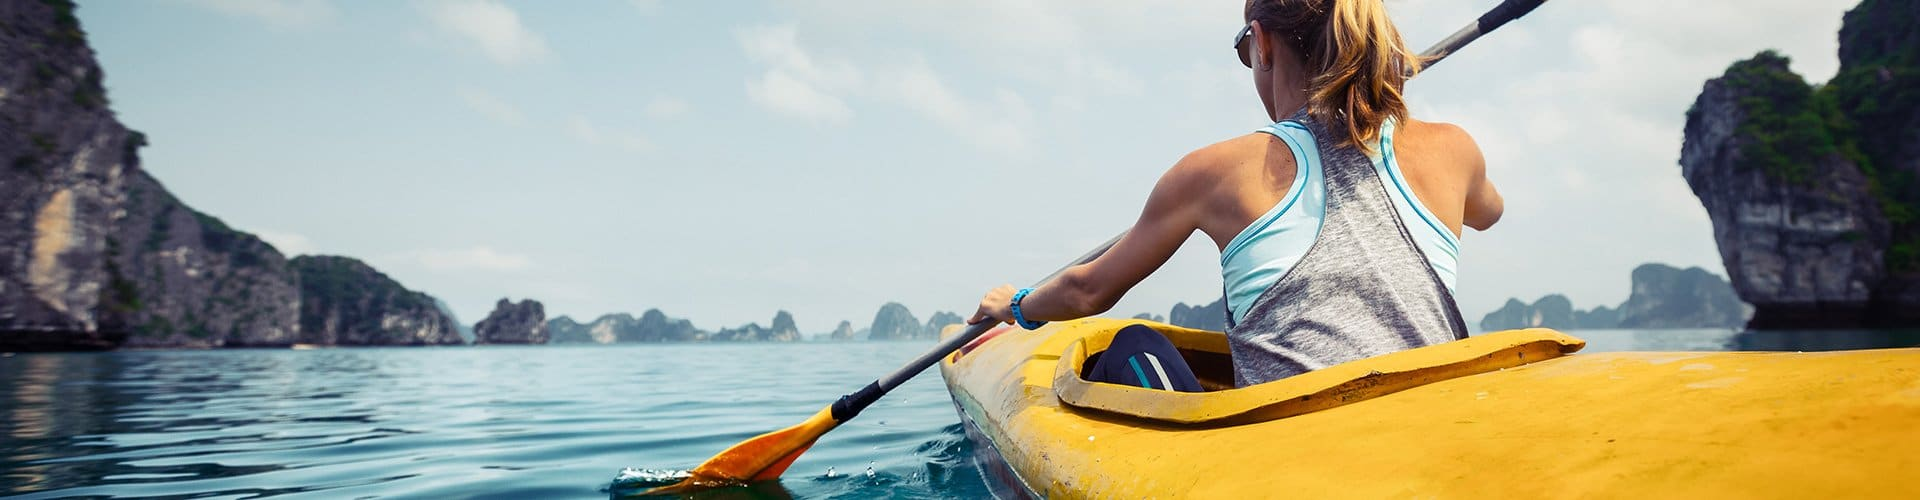 Best Kayaks for Women Reviewed in Detail